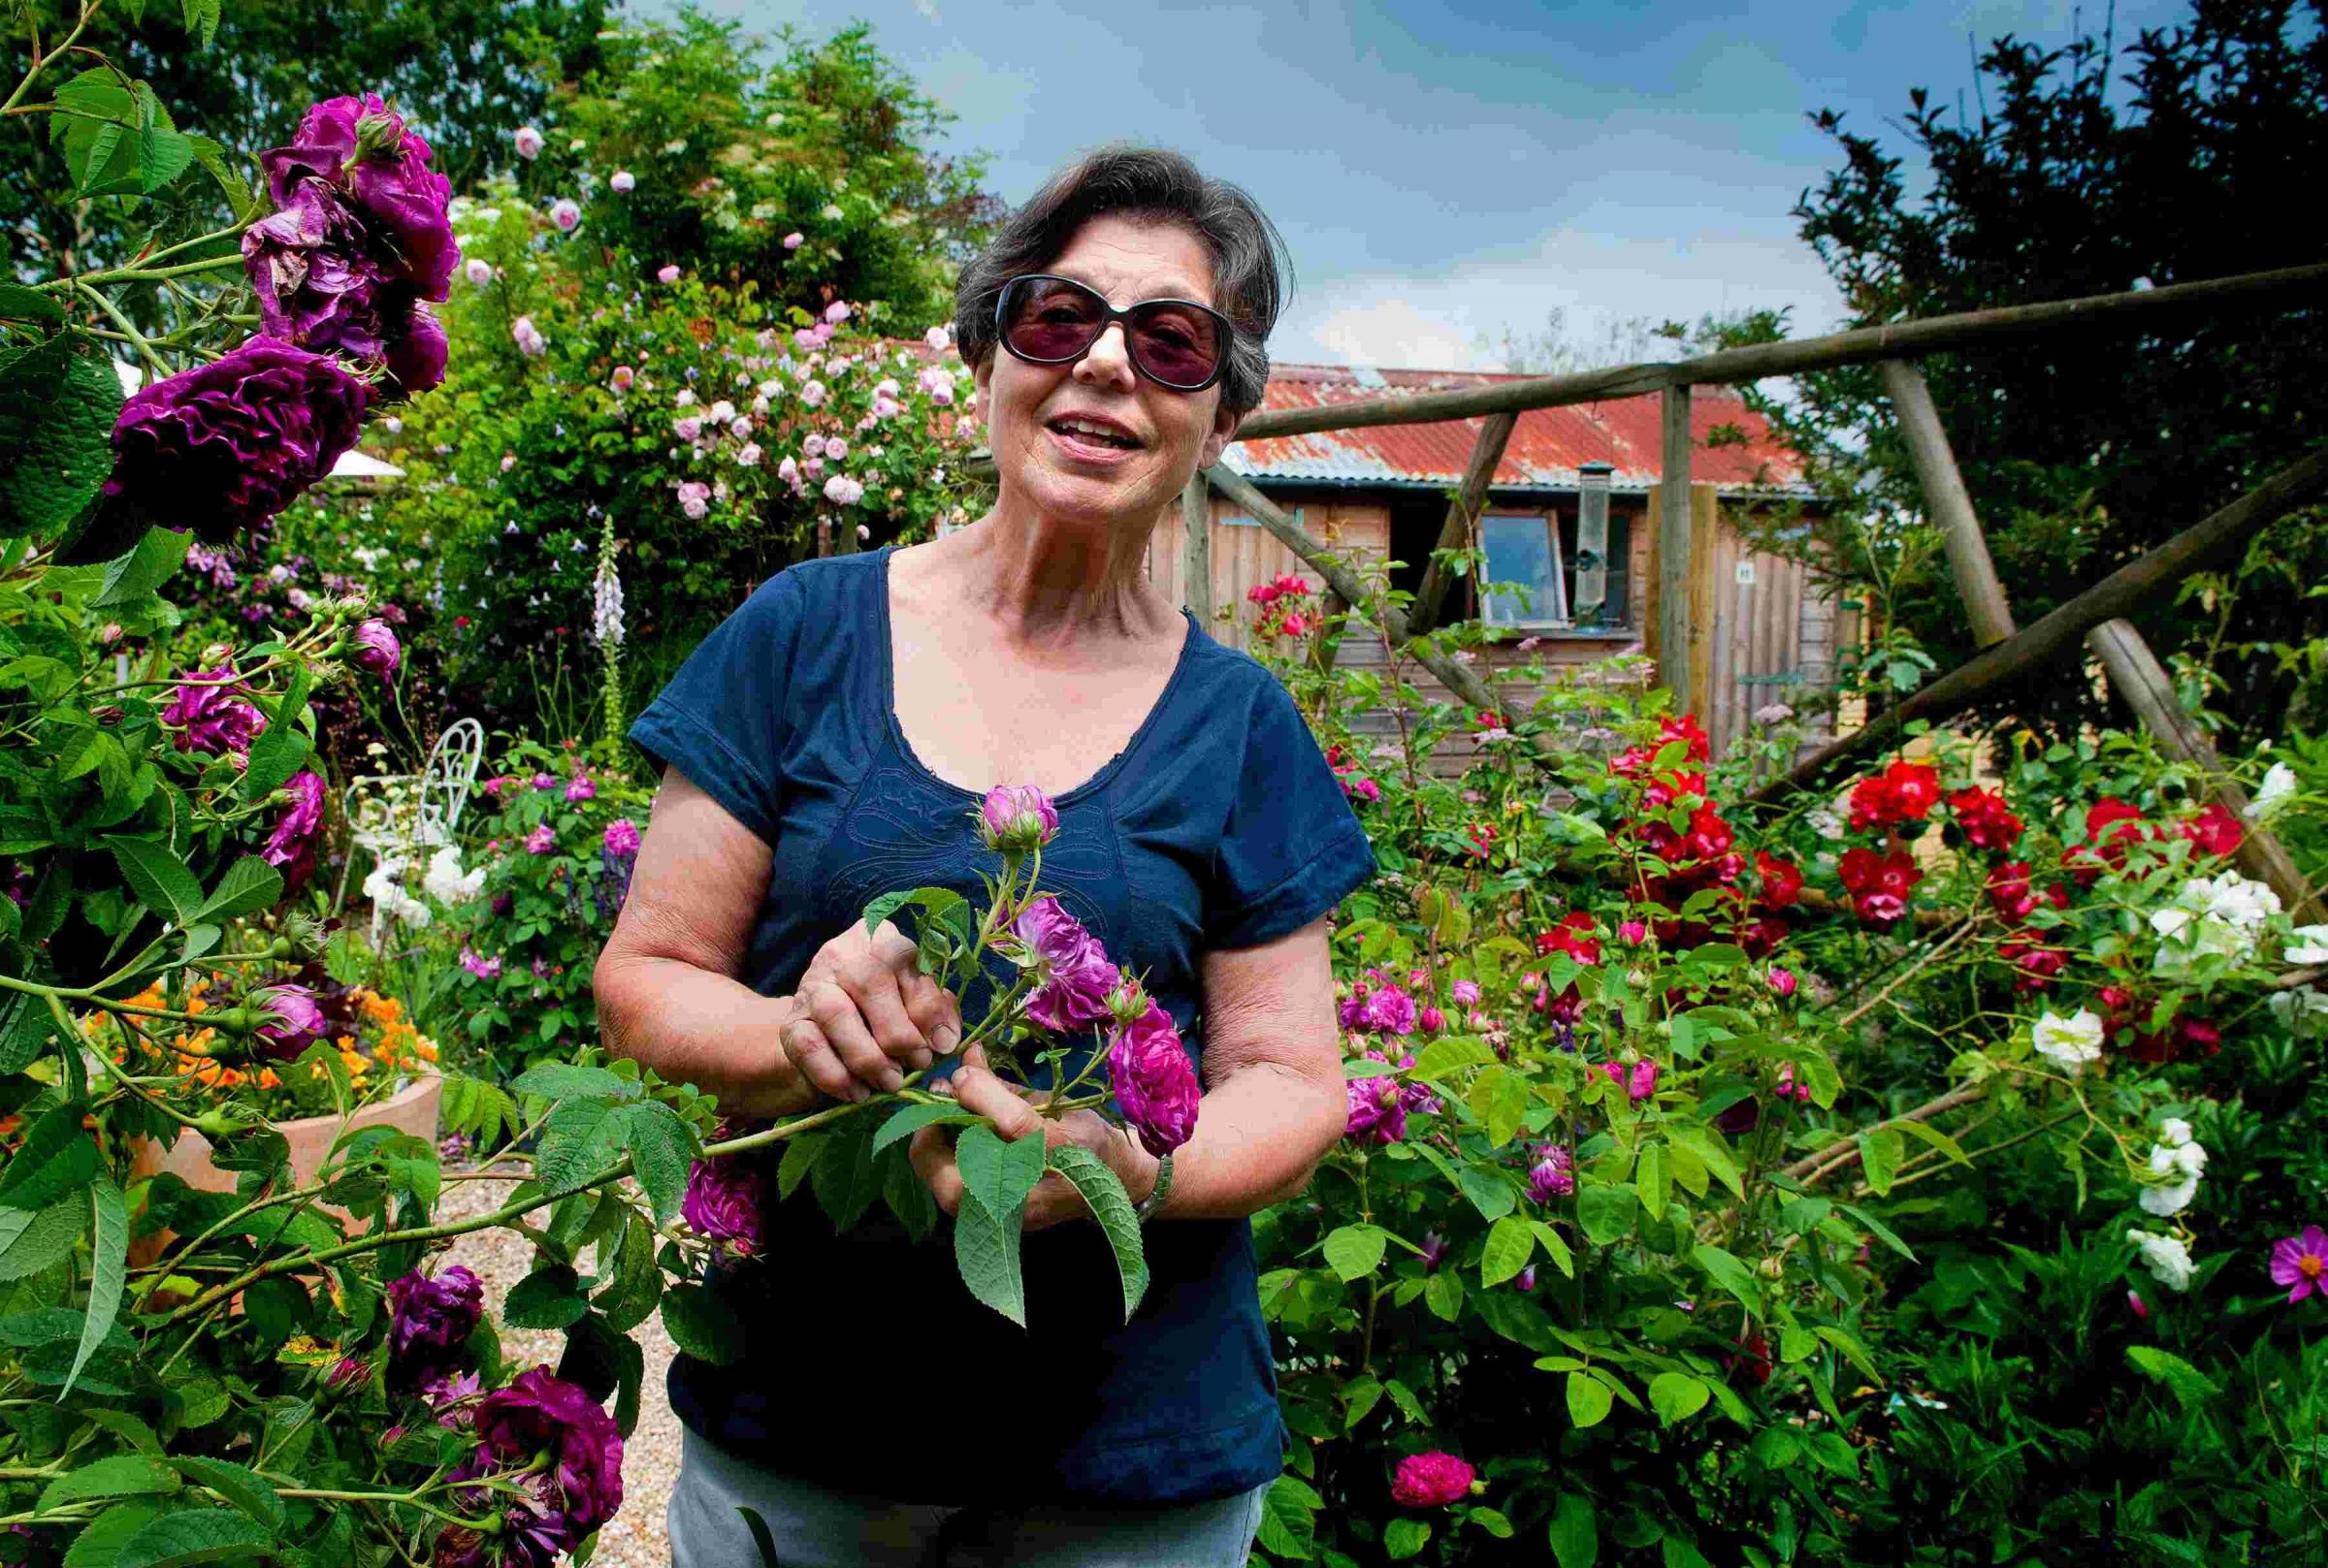 Tucked away gardens opened for charity